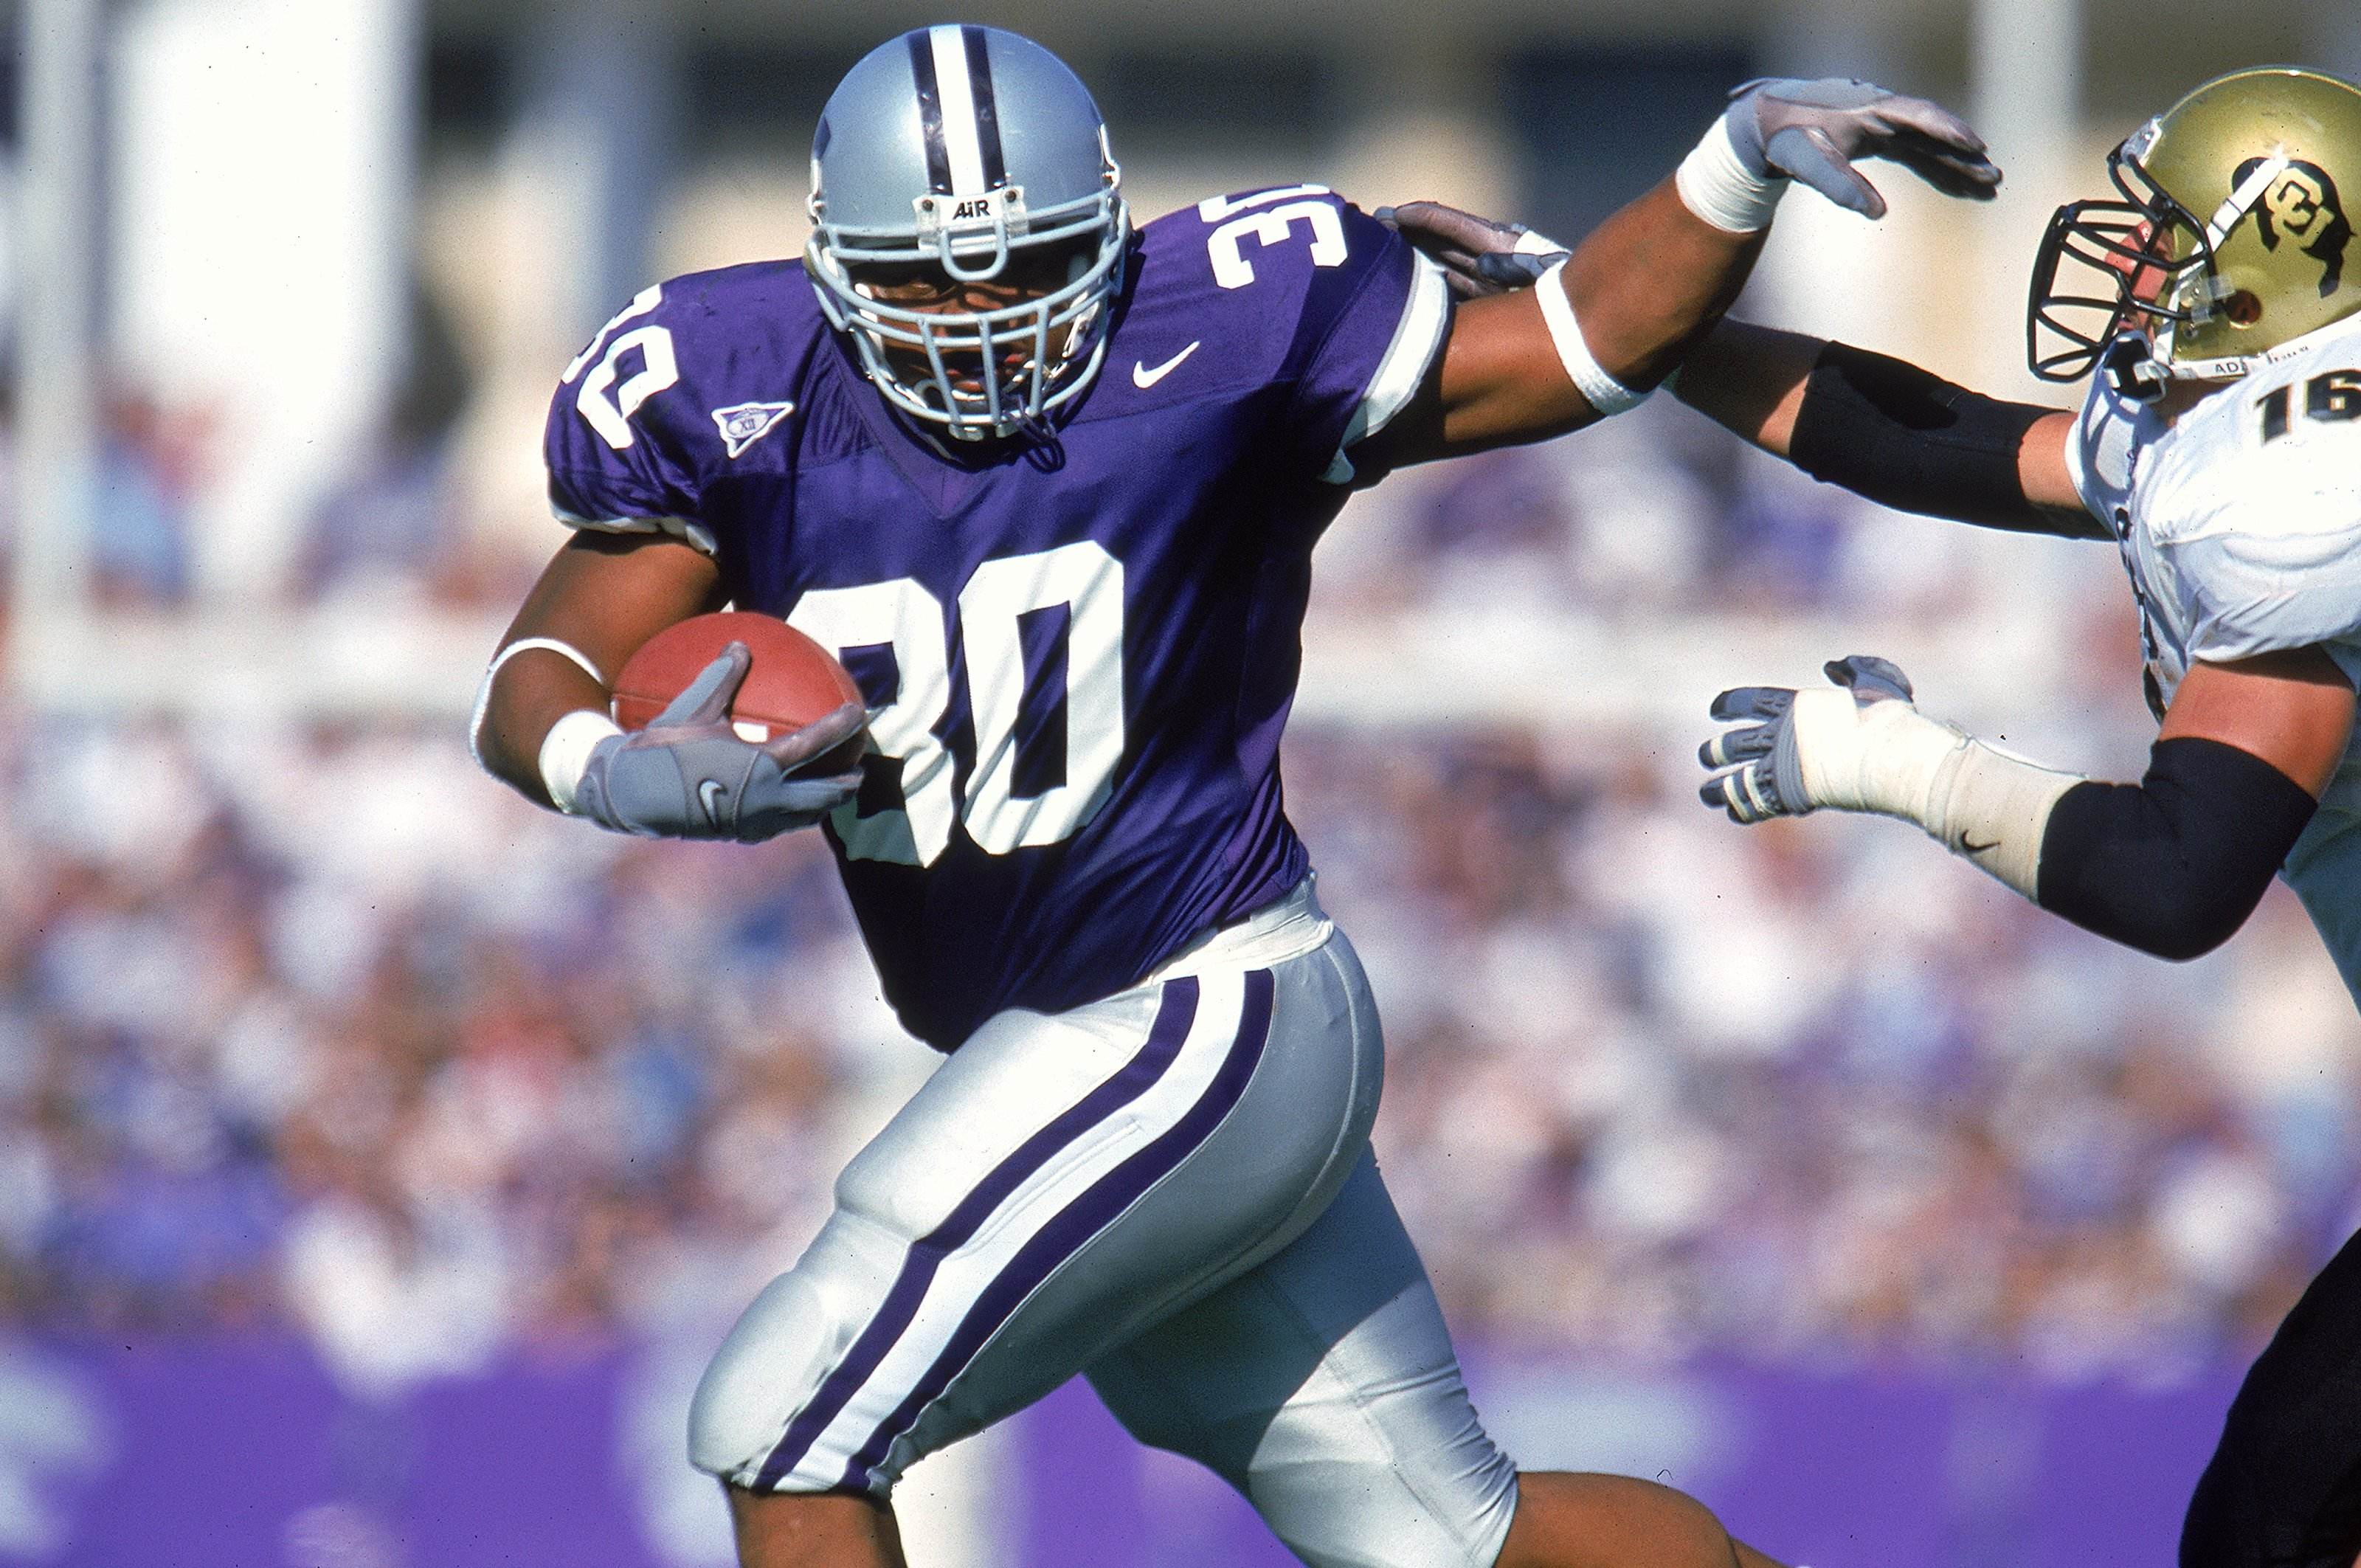 Winston Dimel runs the ball really well for a fullback. Anyone else think he could turn into a second version of this big guy?